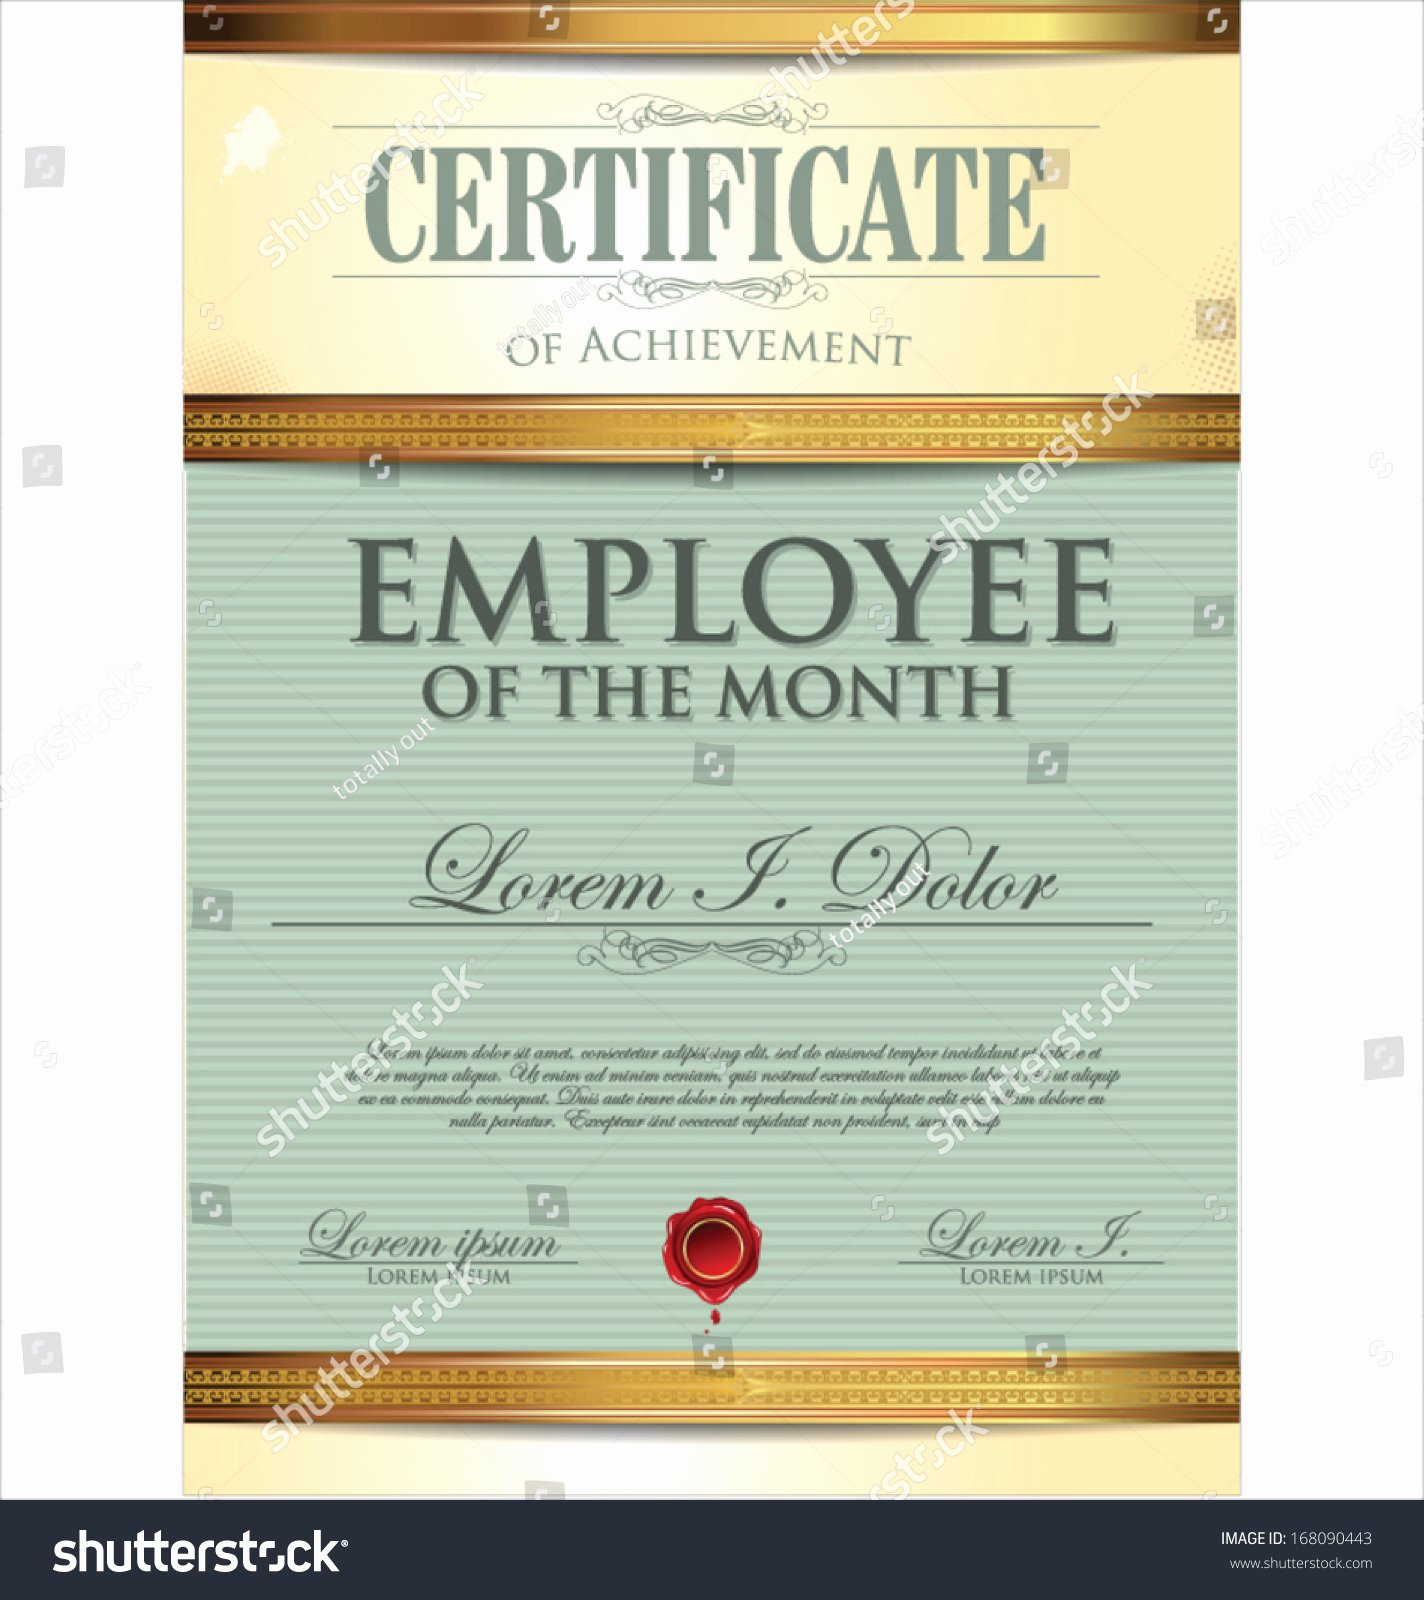 Employee Of the Month Certificate Free Template New Certificate Template Employee Month Stock Vector